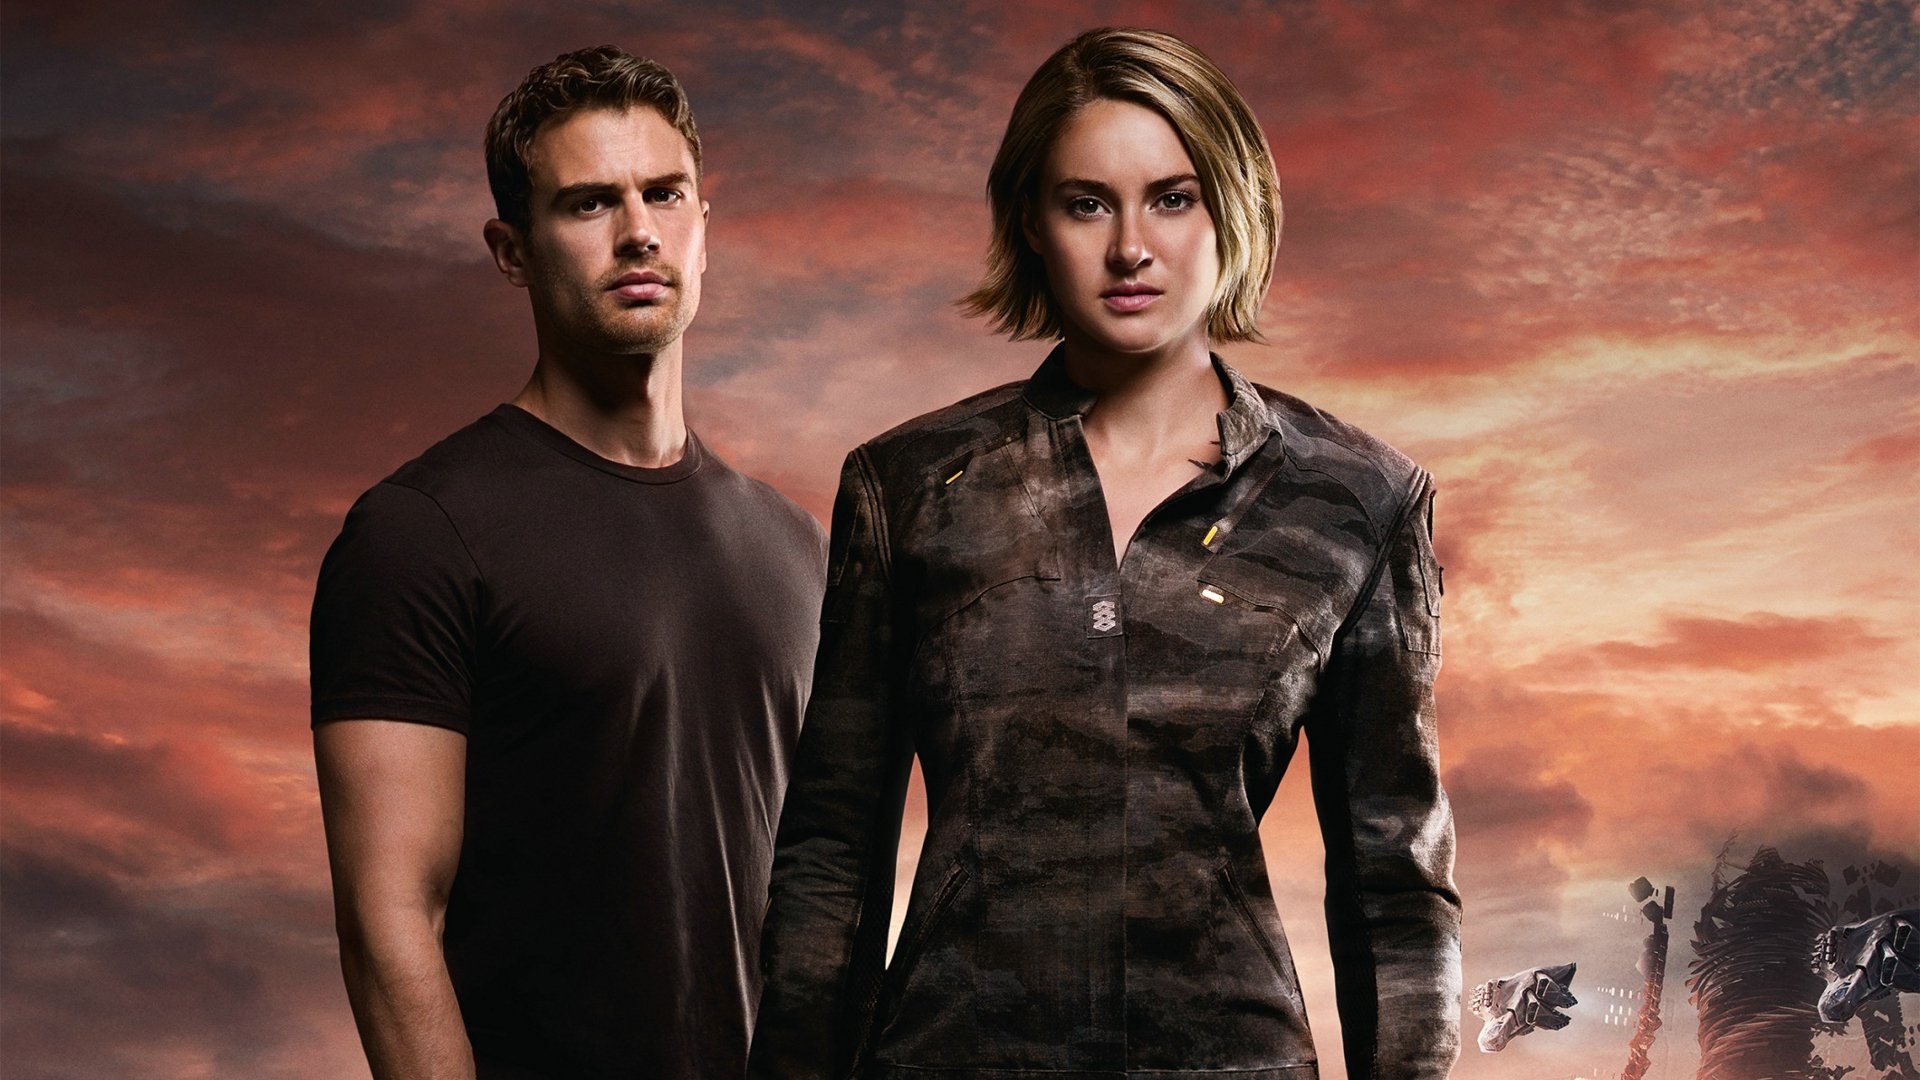 The Divergent Series: Allegiant (2016) Soundtrack